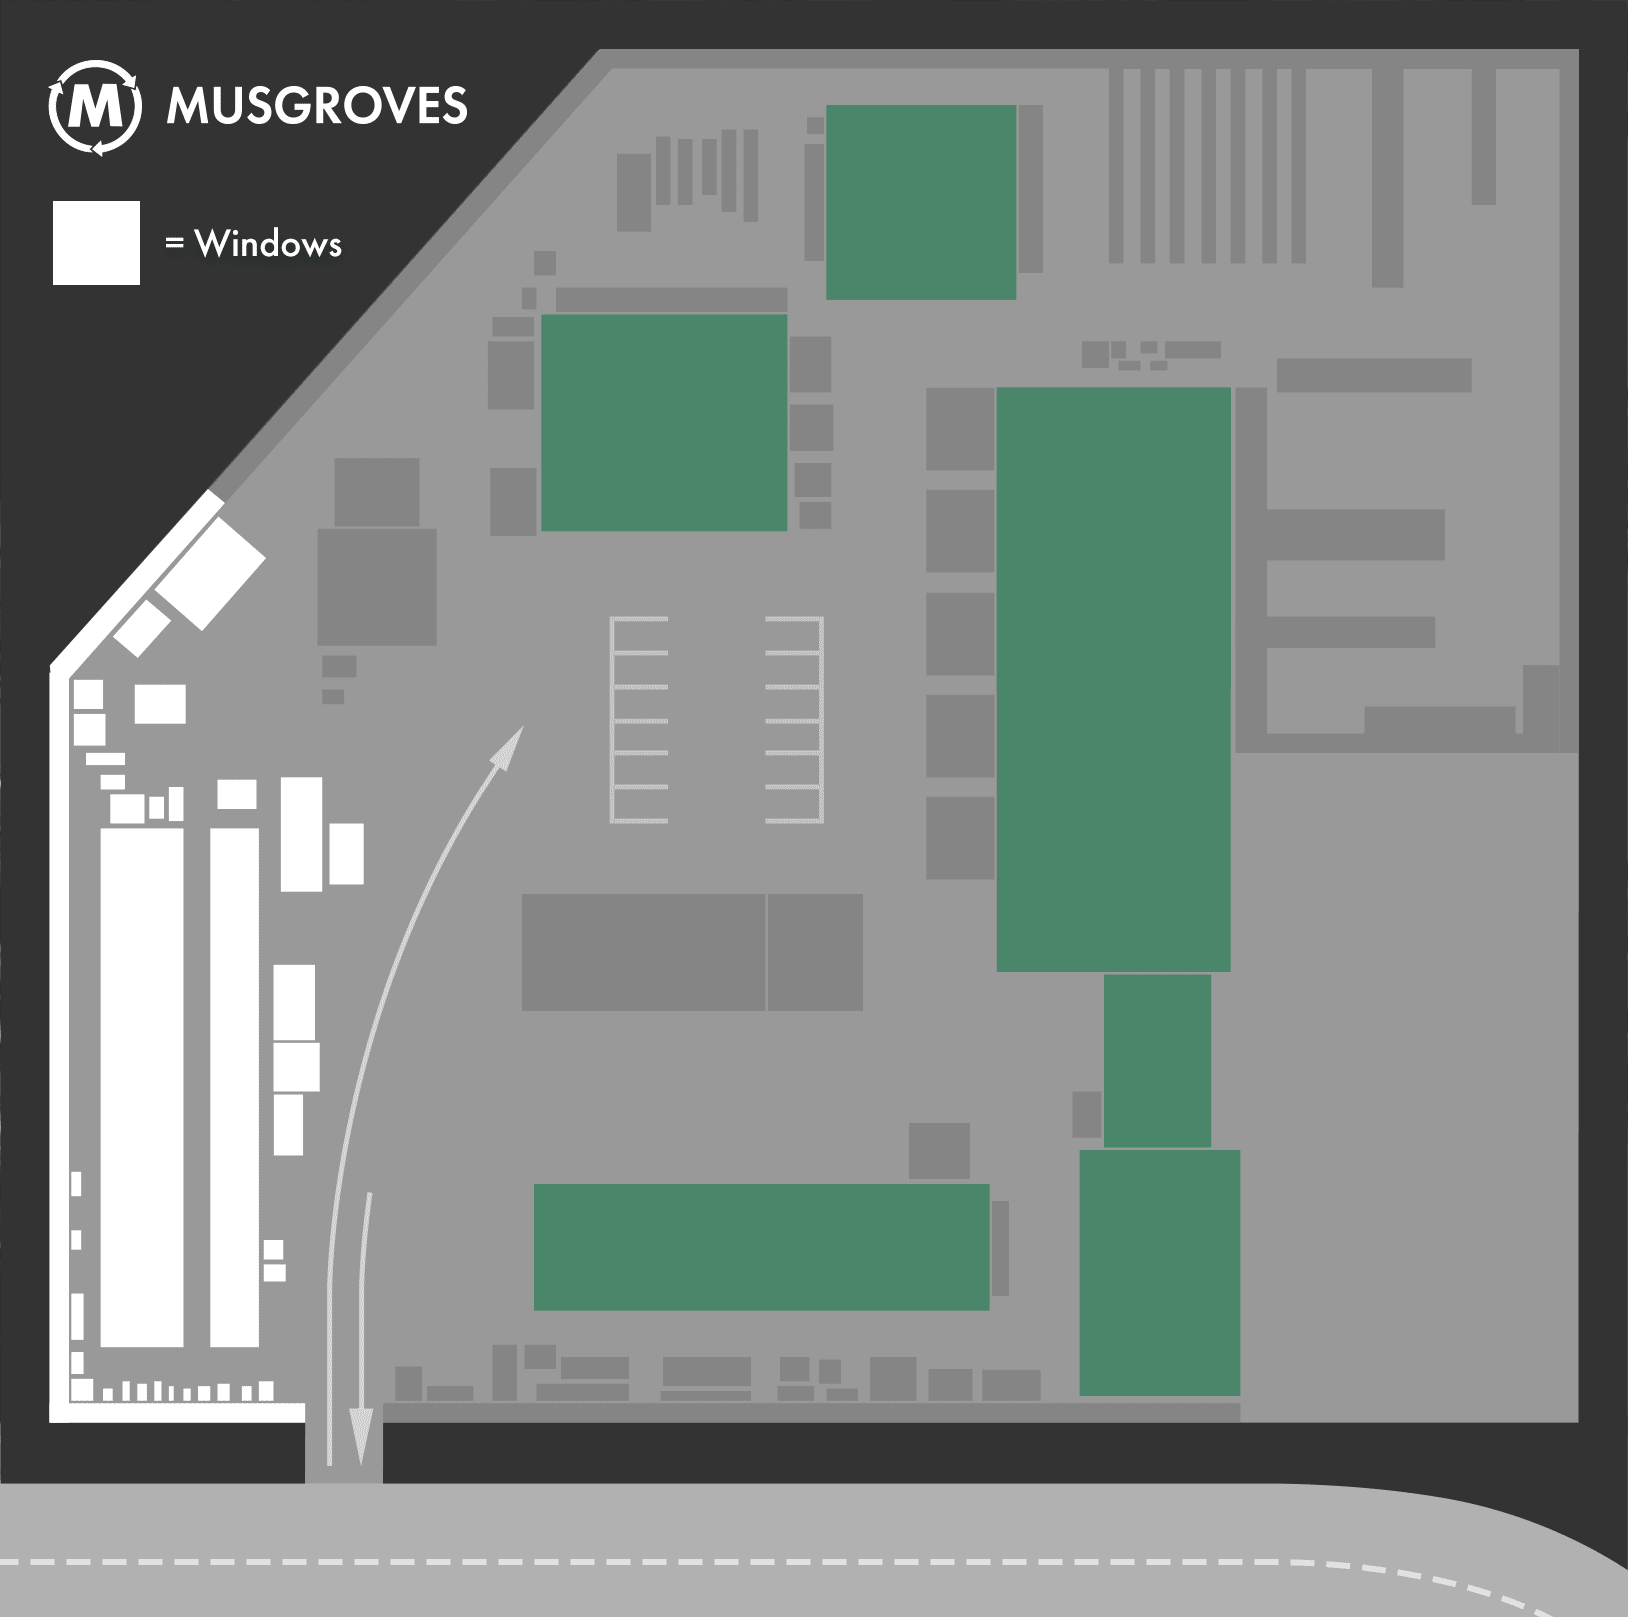 Location of windows at Musgroves